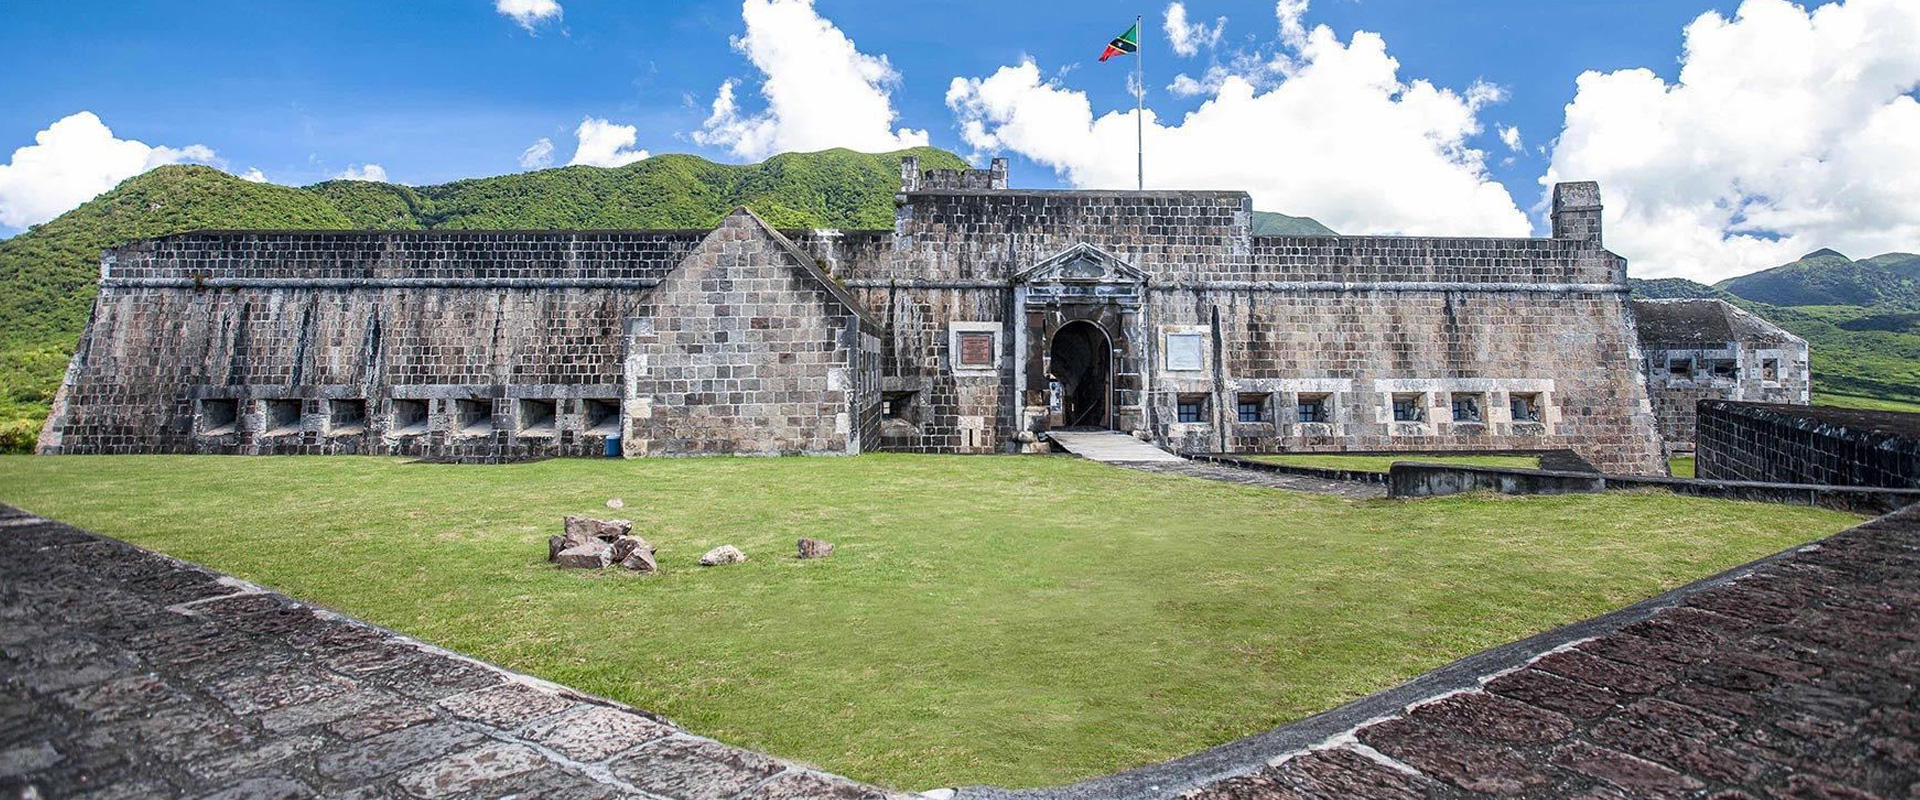 Brimstone Hill UNESCO World Heritage Site in St. Kitts